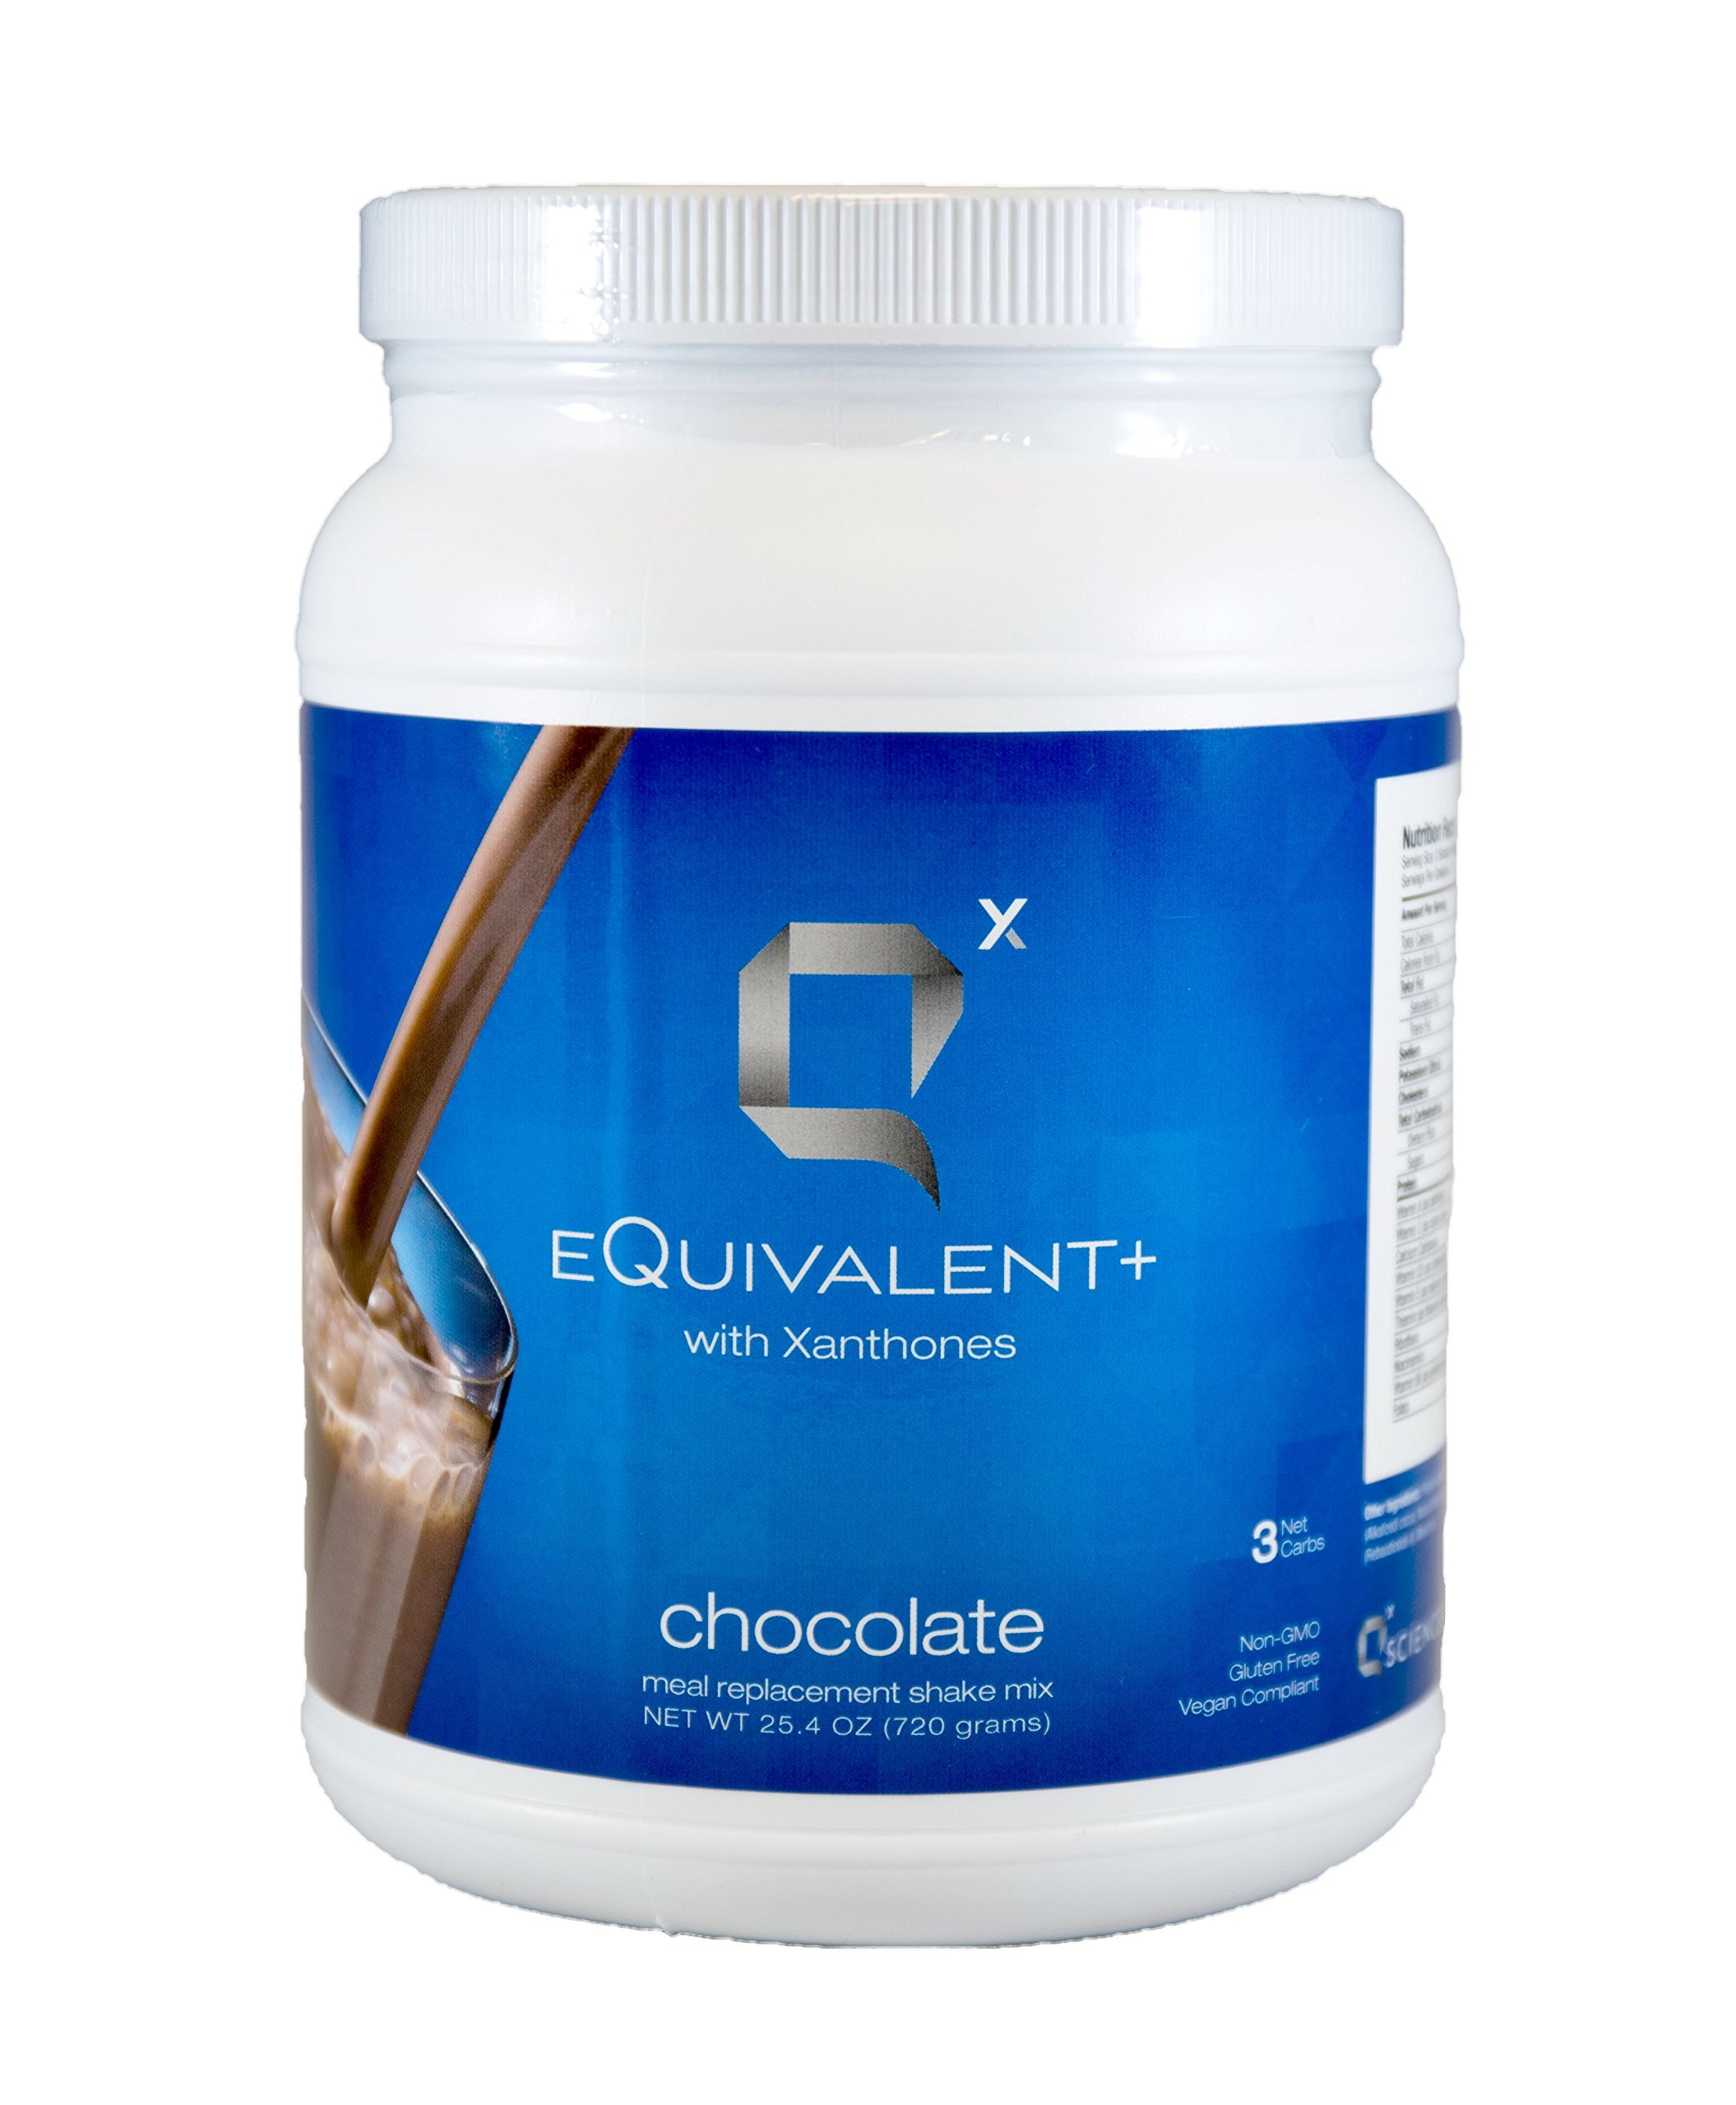 eQuivalent+ w/ Xanthones: Q Sciences Meal Replacement Shake | Protein Shake w/ Enzymes & Antioxidants | Weight Loss Shake | Blood Sugar Regulation | Dietary Supplement Meal Replacement Powder 25oz